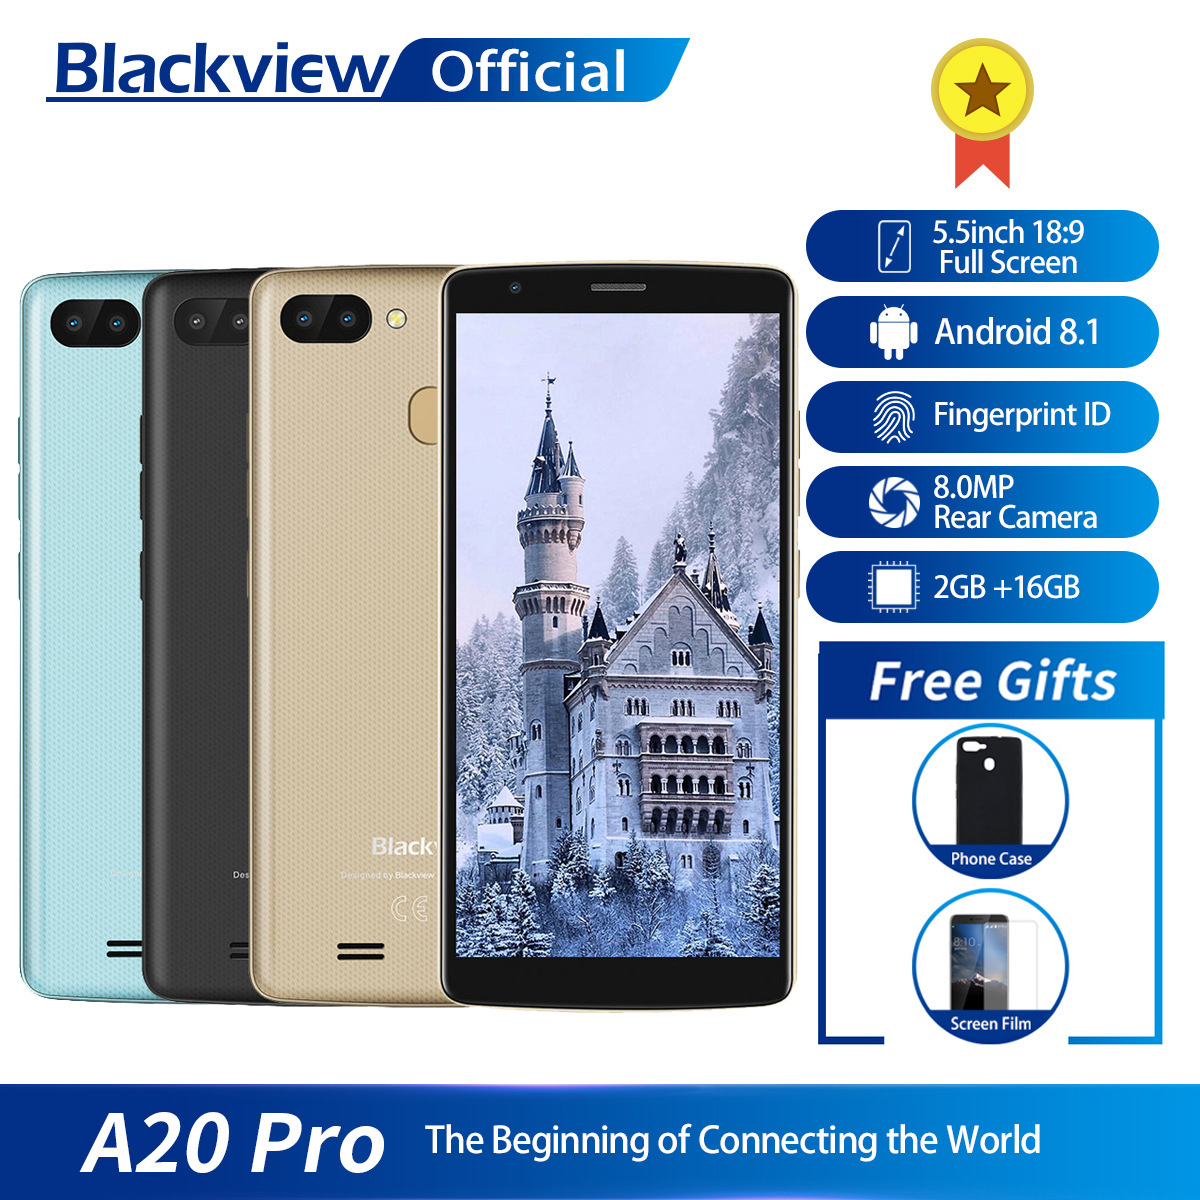 Blackview A20 Pro 5.5inch 18:9 Full Screen 2GB RAM 16GB ROM MT6739WAL Quad Core Android 8.1 Fingerprint Dual SIM 4G Smartphone